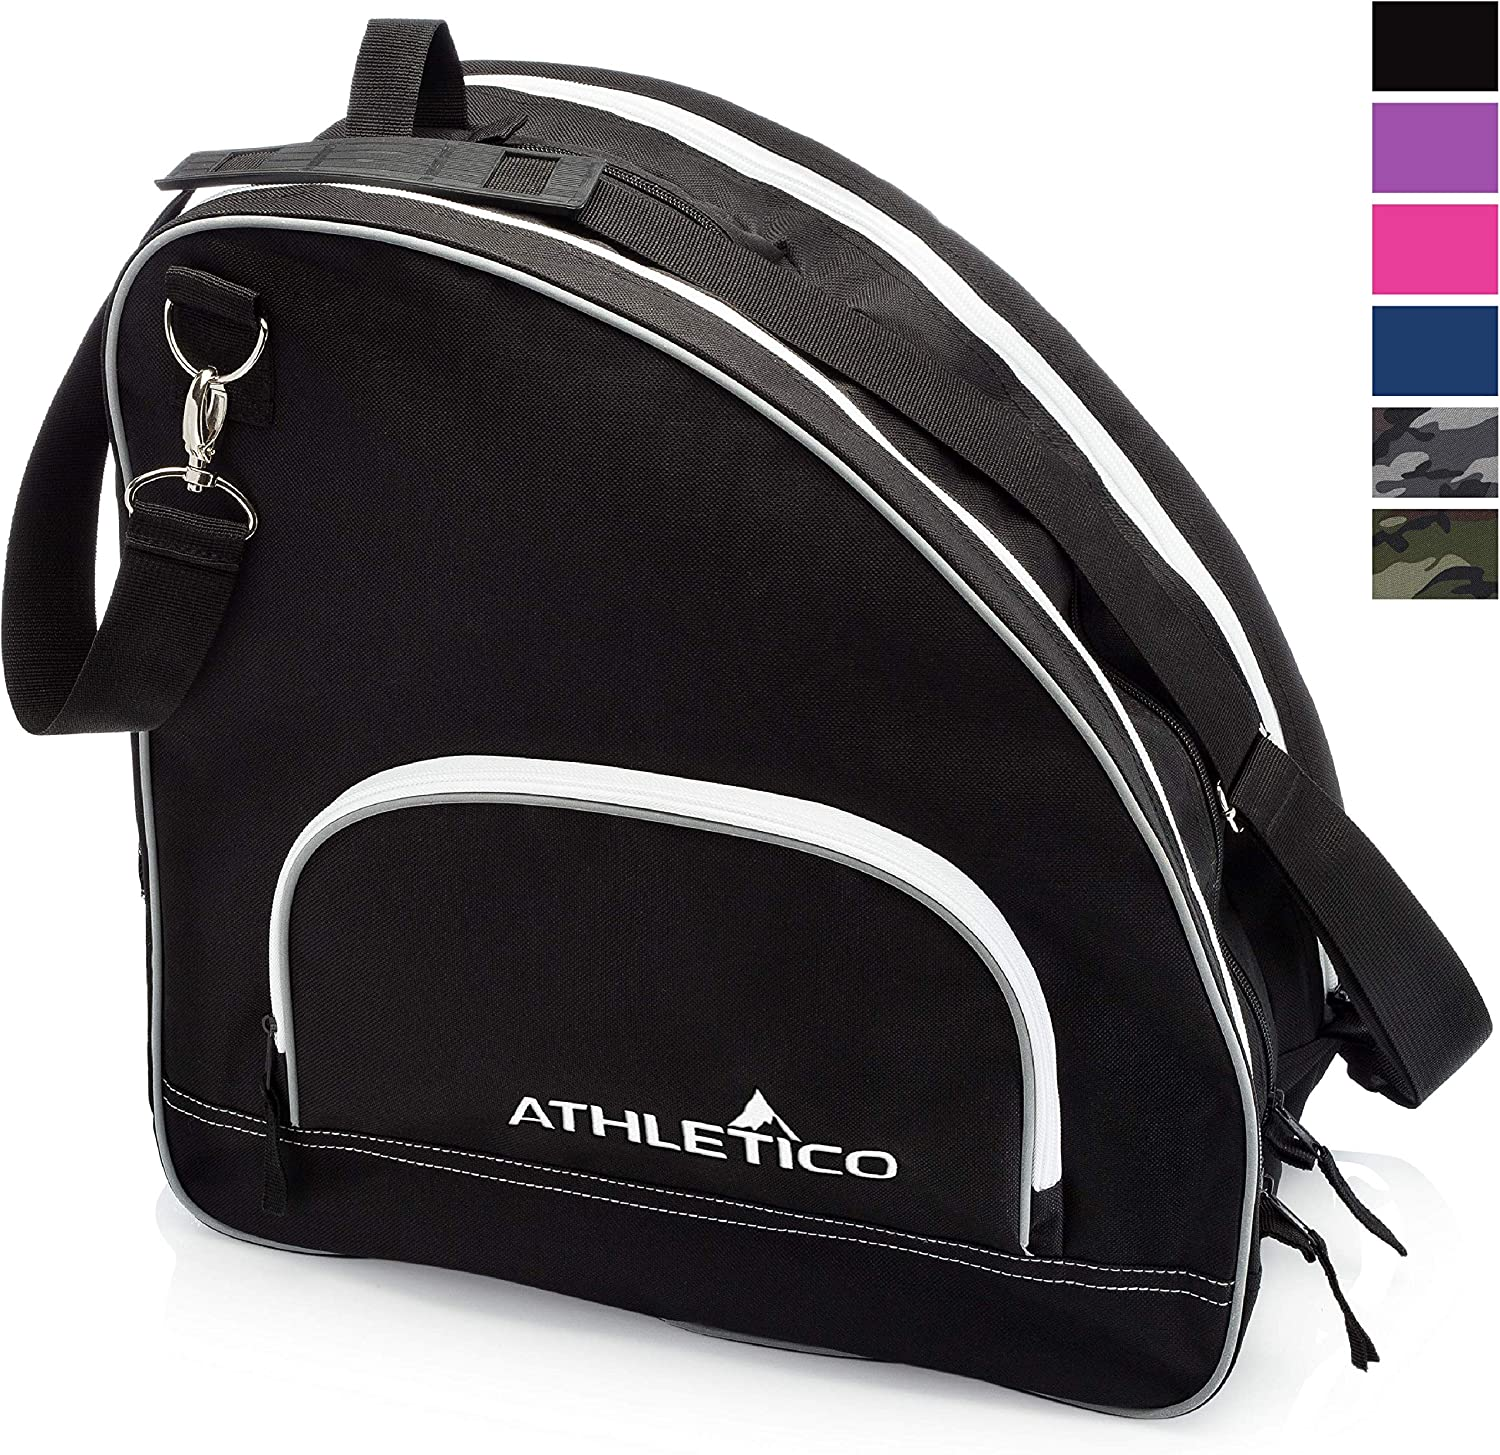 Athletico Ice & Inline Skate Bag - Premium Bag to Carry Ice Skates, Roller Skates, Inline Skates for Both Kids and Adults (Black) : Sports & Outdoors